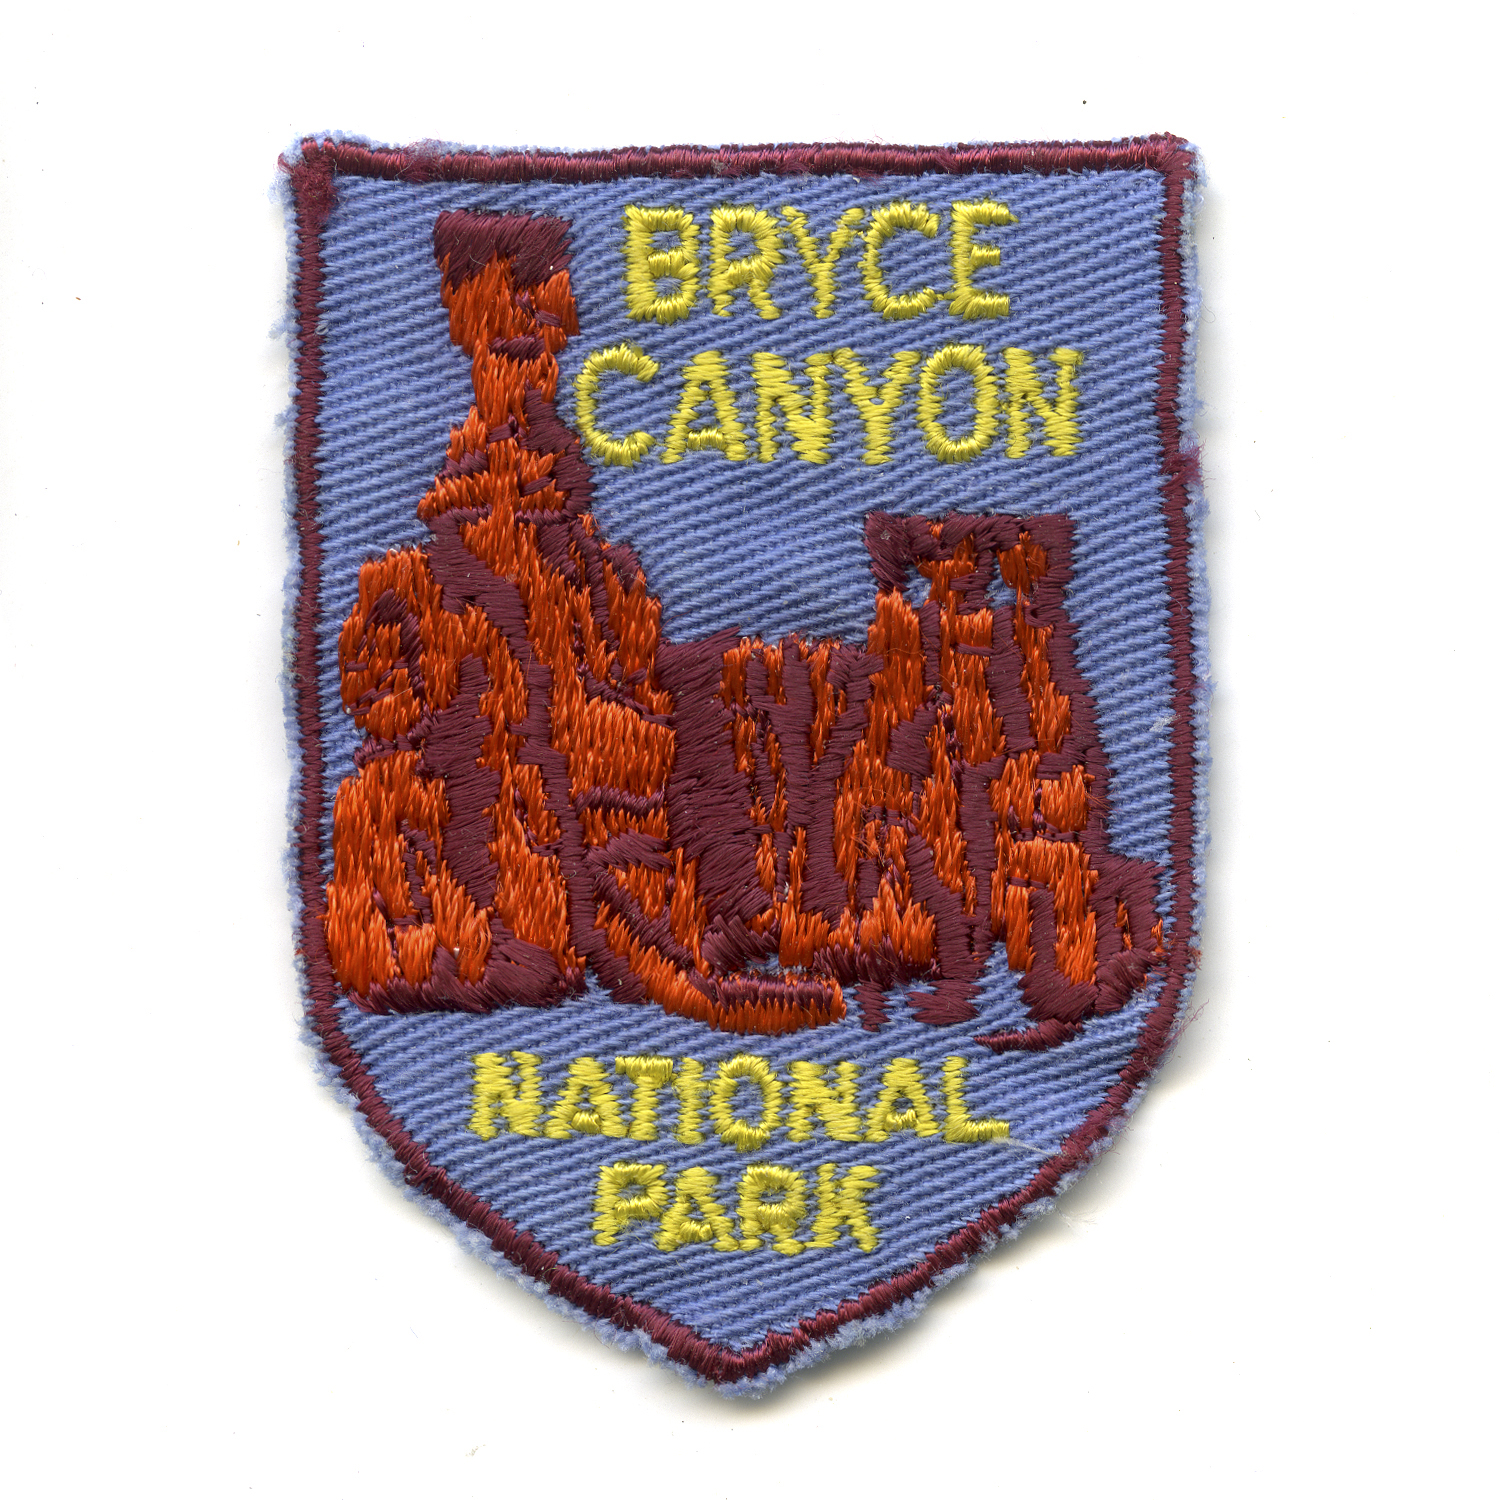 nps_patch_project_bryce_canyon_patch_1.jpg